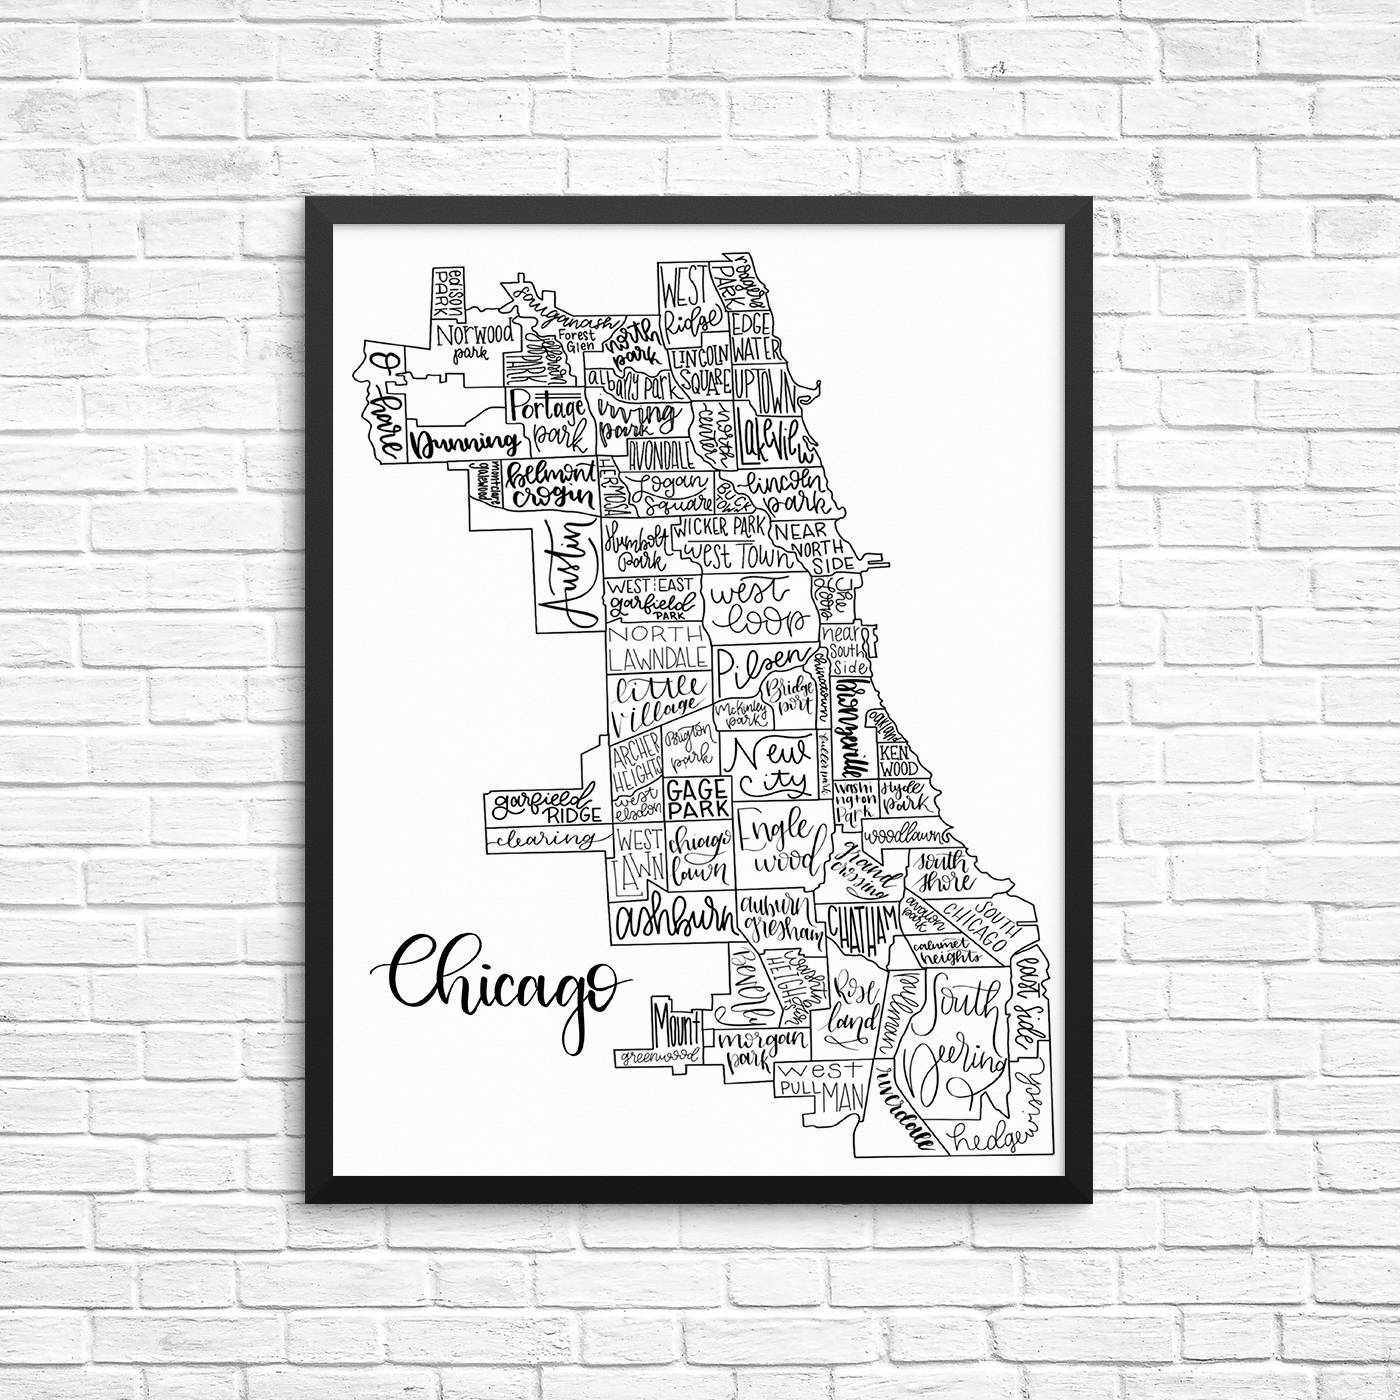 Hand Lettered Chicago Neighborhood Map Home Decor Wall Art Regarding 2017 Chicago Neighborhood Map Wall Art (View 13 of 20)